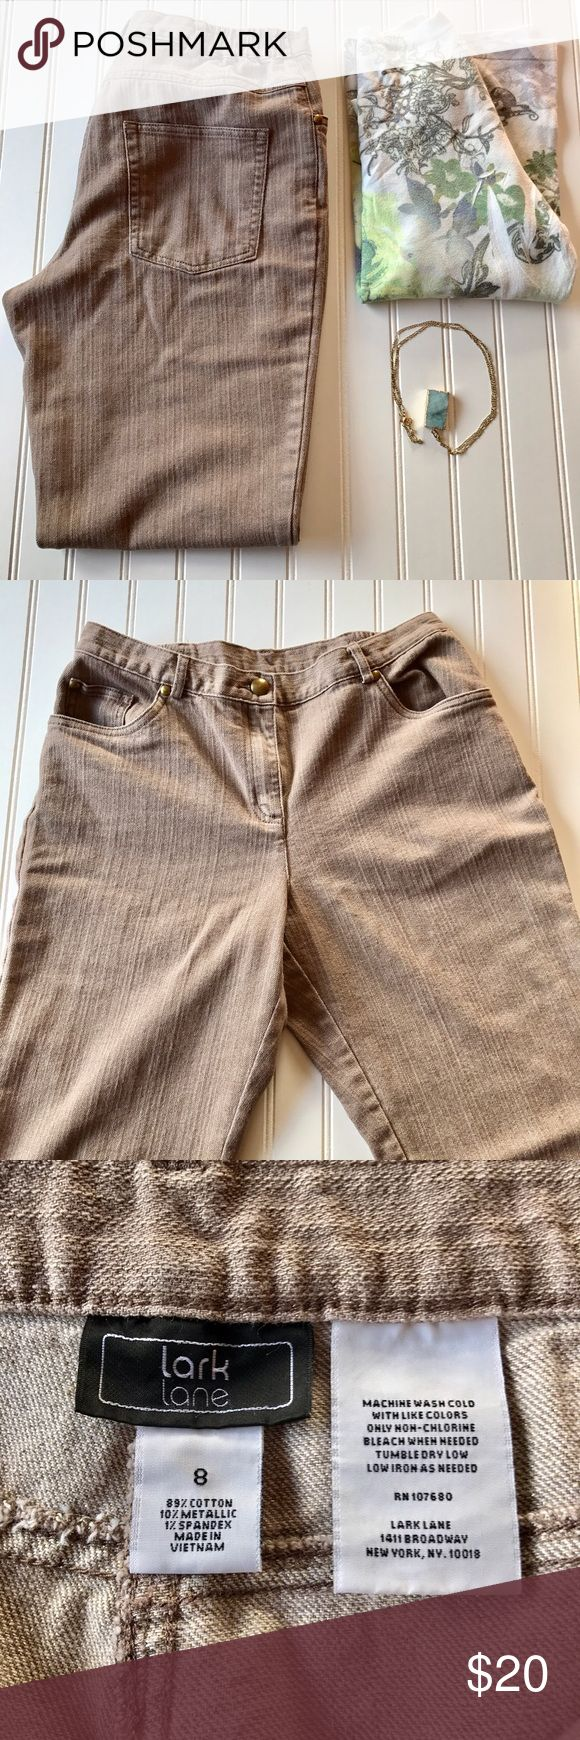 """Lark Lane Tan Jeans With Gold Accents Lark Lane Tan Jeans With Gold Accents.  Stretchy waist.  No rips or stains.  Waist 30"""" Inseam 28""""  No trades, offers welcome. Lark Lane Jeans"""